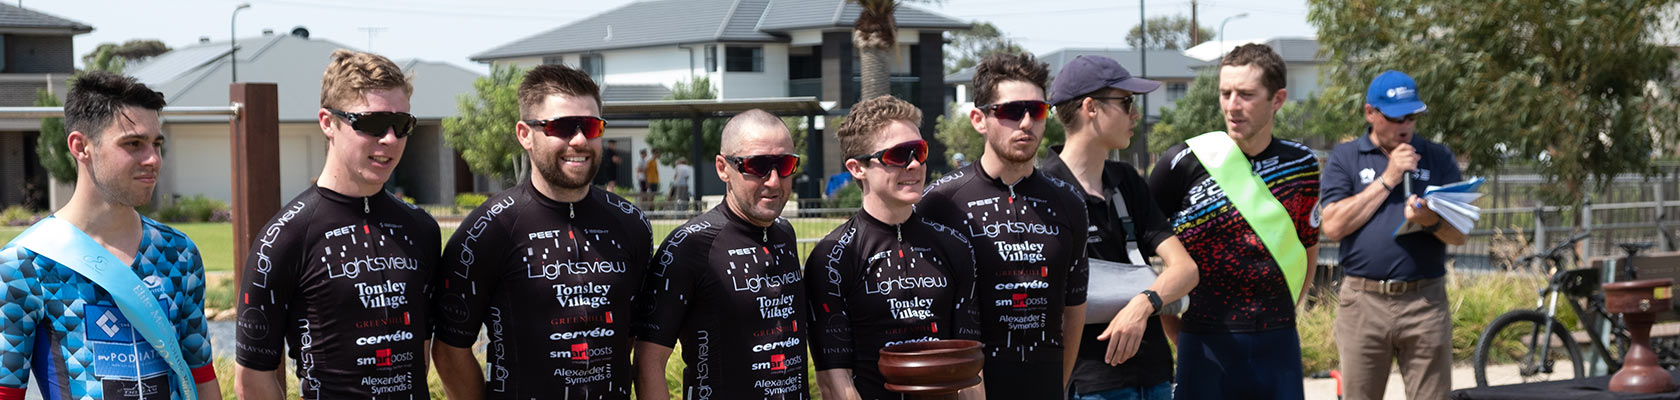 Lightsview Cycling Team